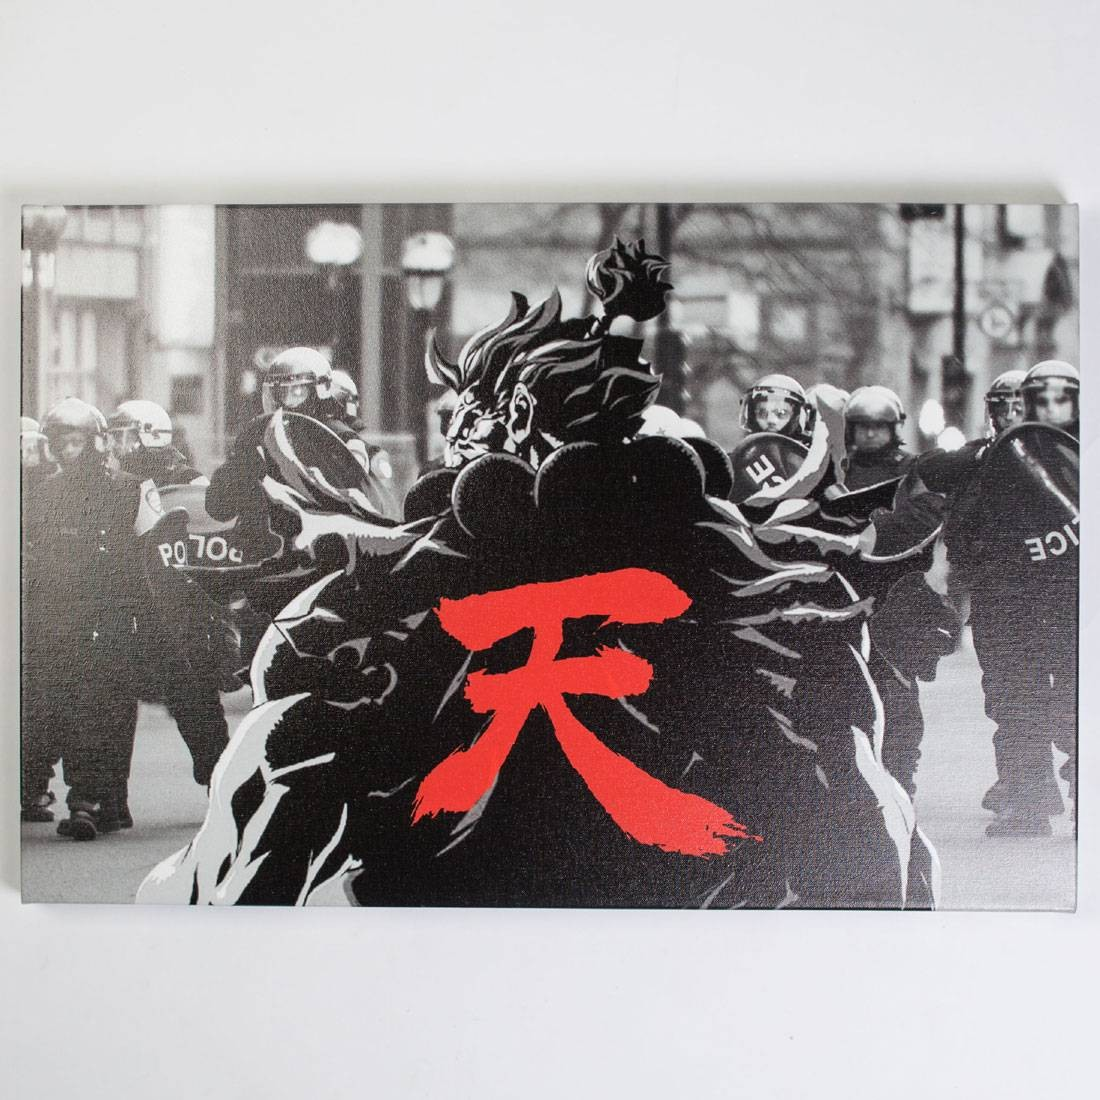 BAIT x Street Fighter Akuma Snapshot 24 x 30 In Canvas Art Print (black)